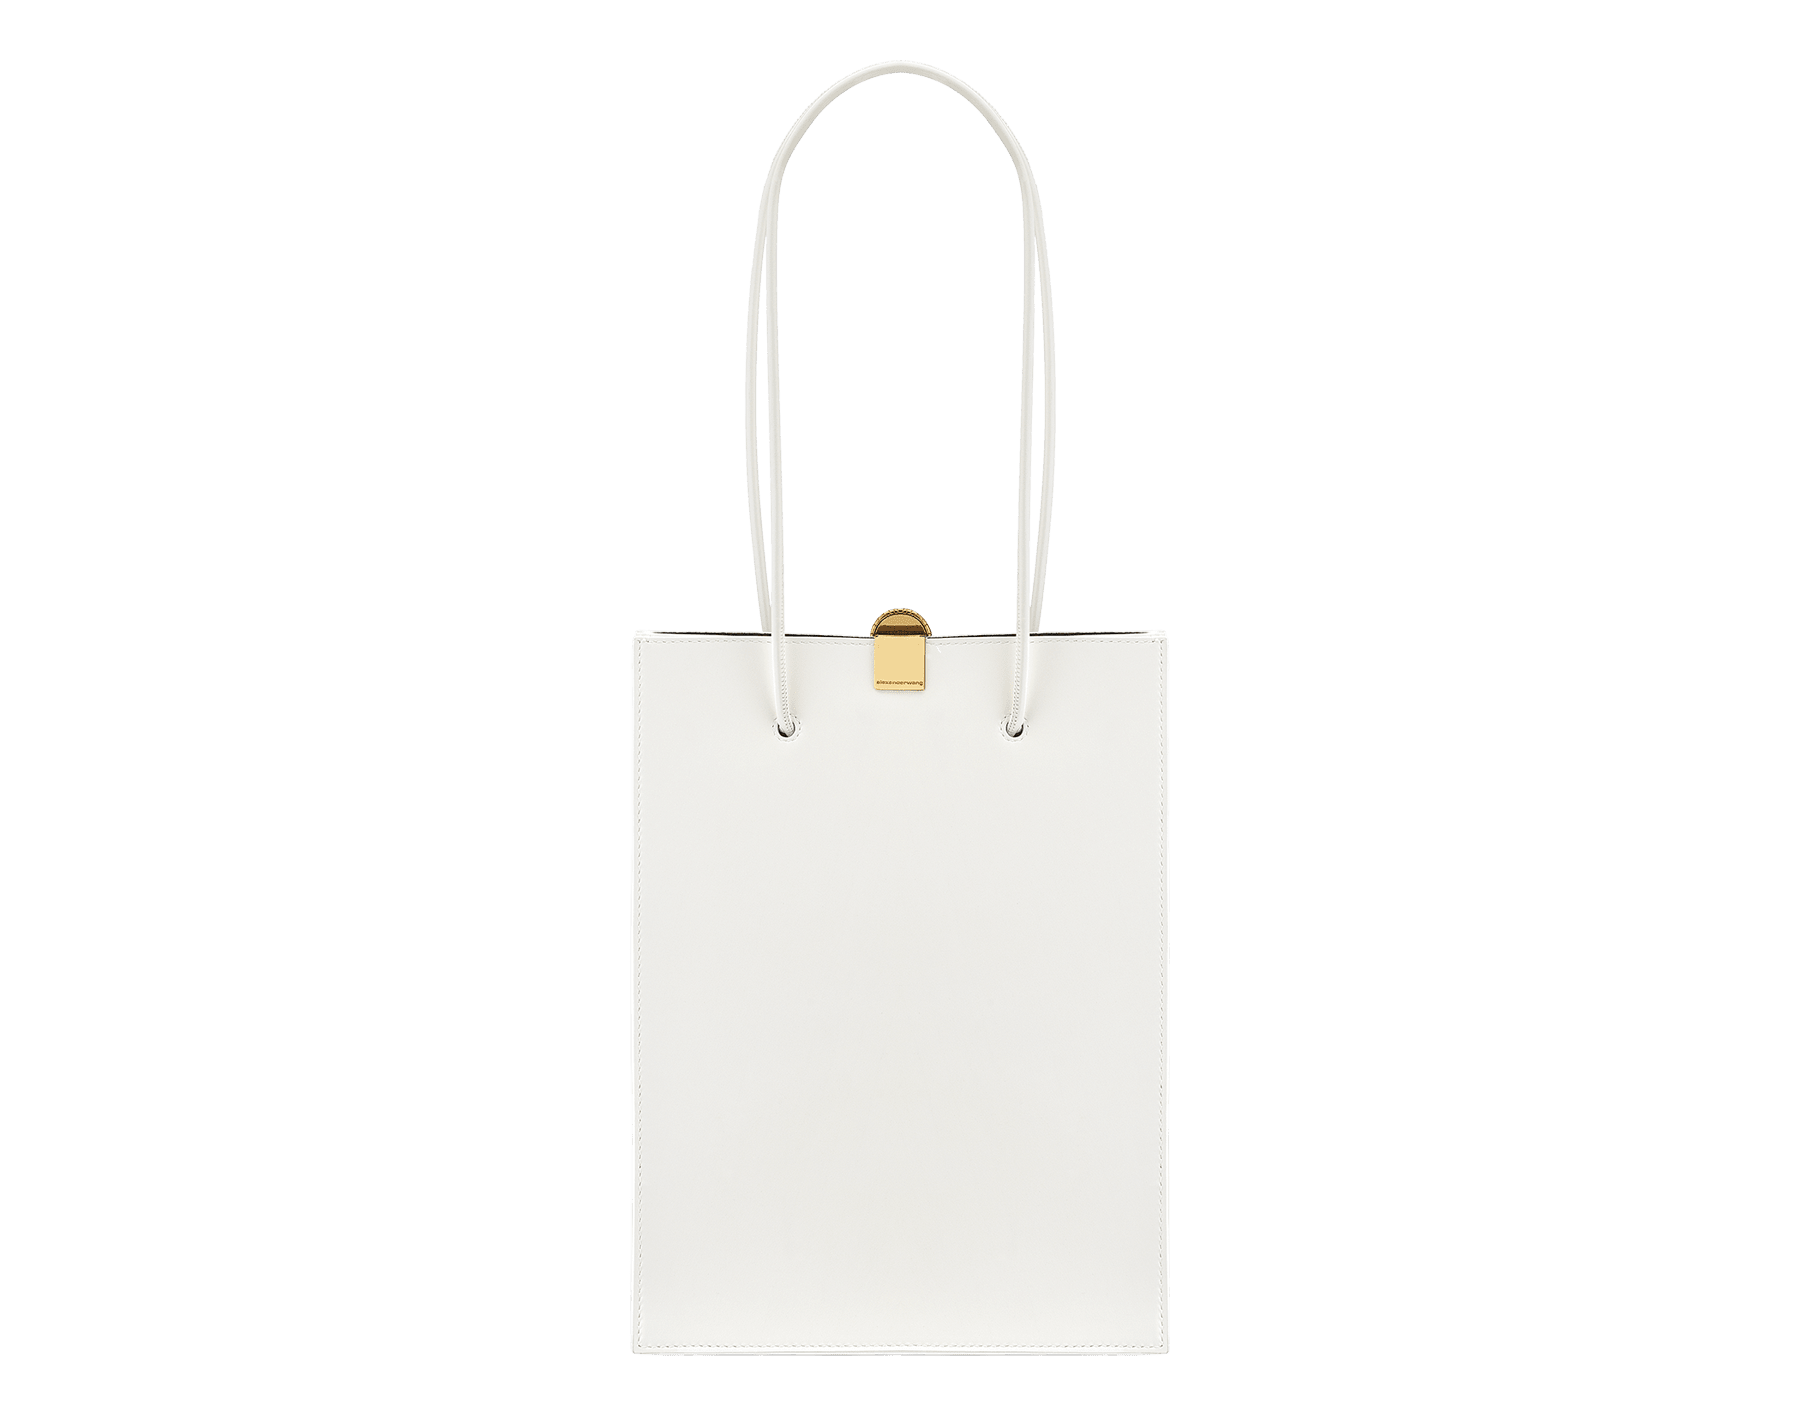 Alexander Wang x Bvlgari shopping tote bag in smooth white calf leather. New Serpenti head closure in antique gold plated brass with tempting red enamel eyes. Limited edition. 288730 image 3